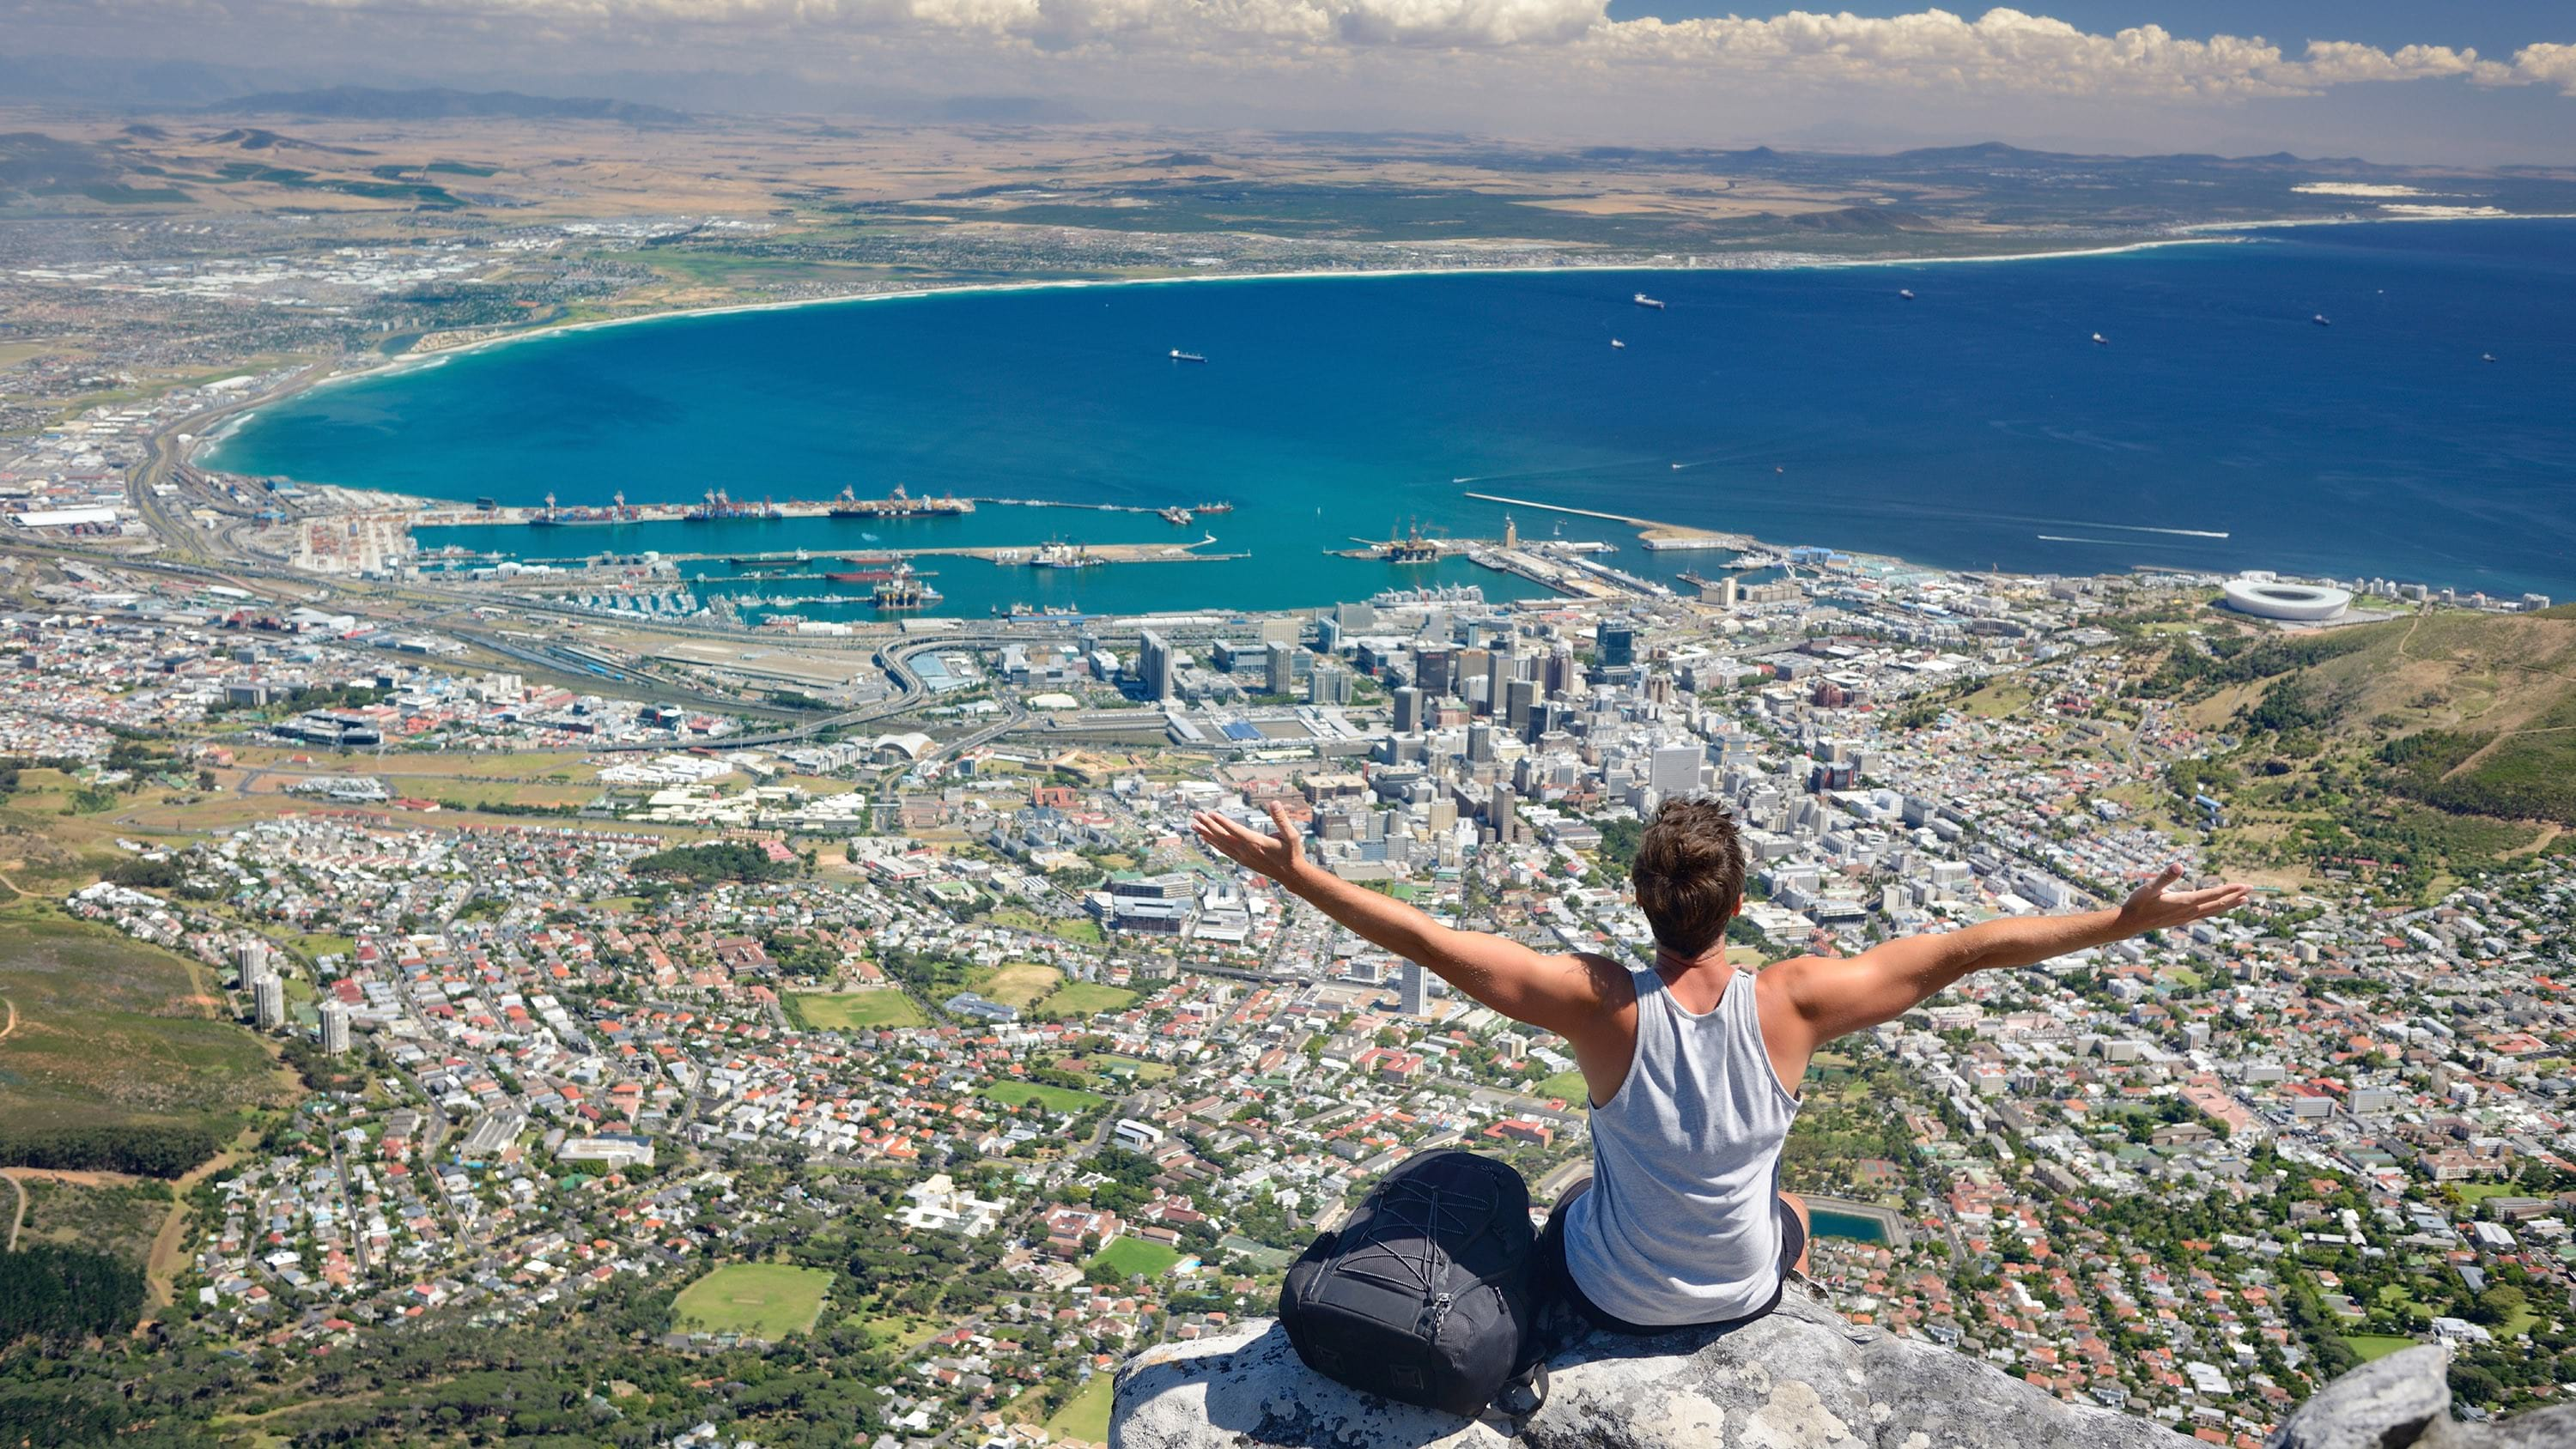 Top of Table Mountain, Cape Town, South Africa